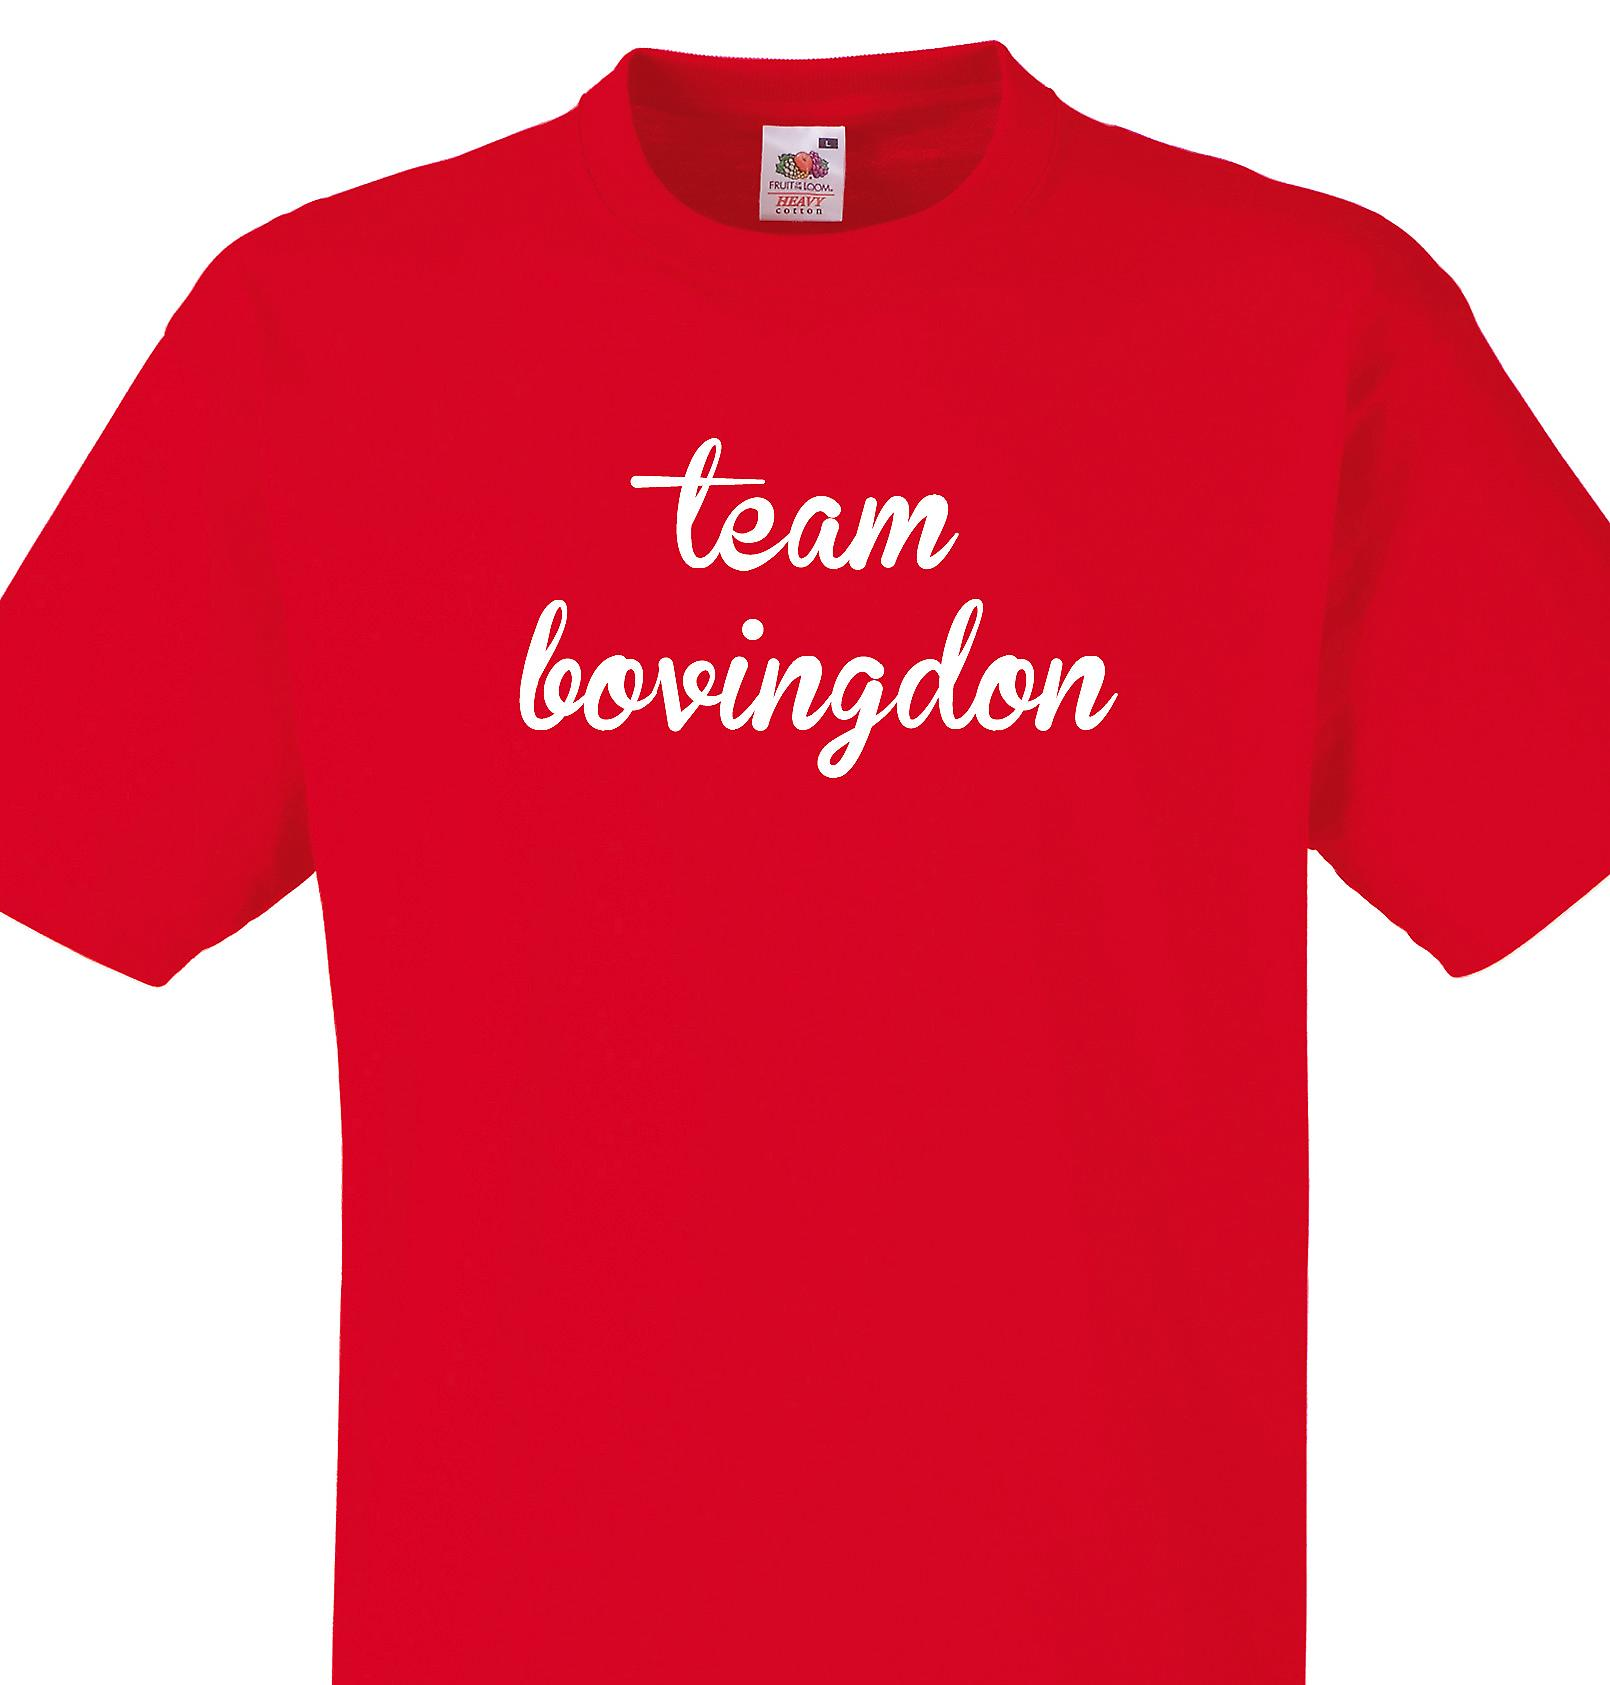 Team Bovingdon Red T shirt